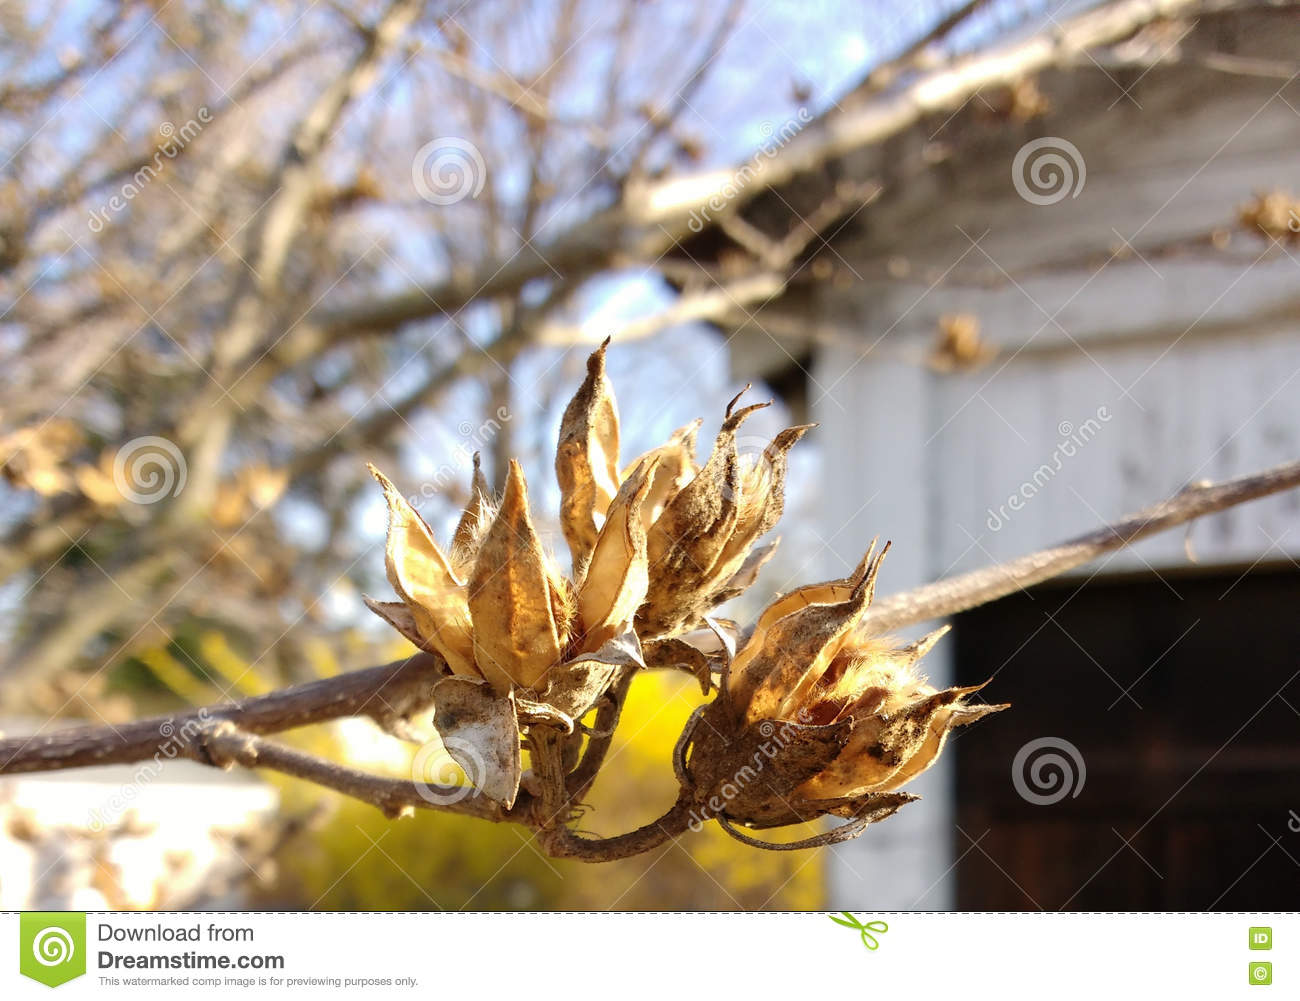 Rose Of Sharon Seedpods Stock Image Image Of Dried Hobbies 72119953